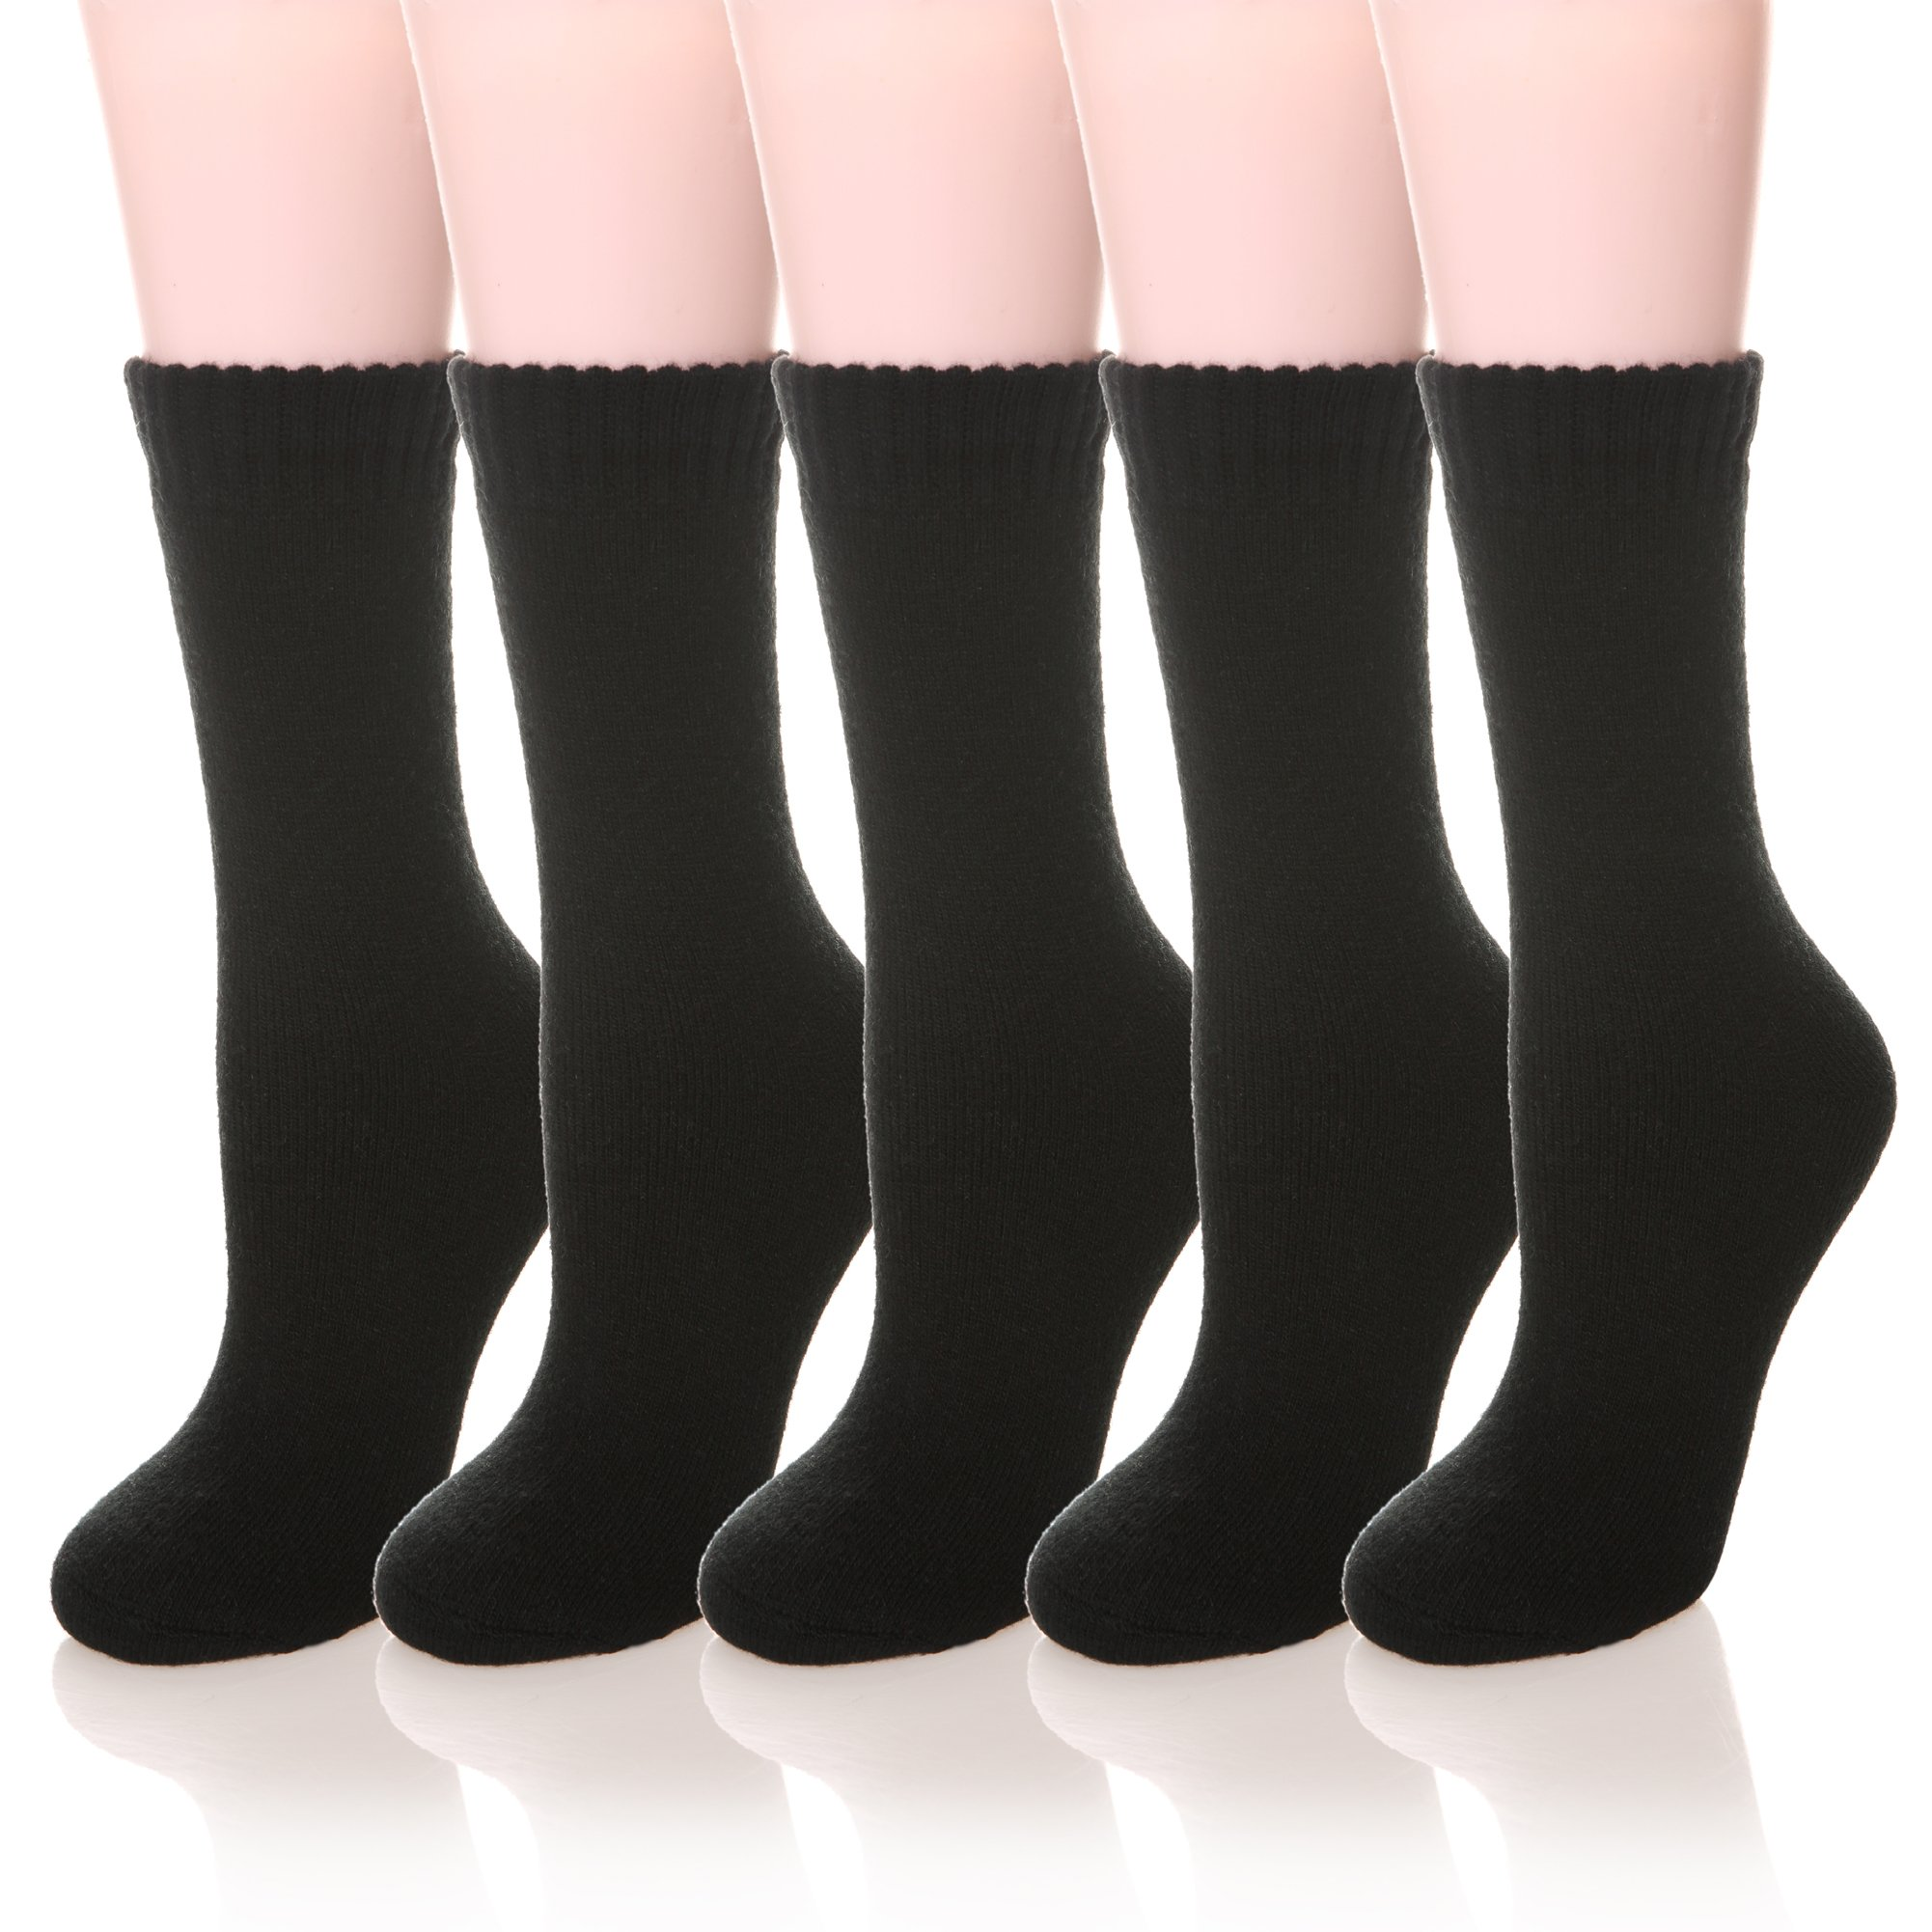 Color City Women's Super Thick Soft Knit Wool Warm Winter Crew Socks - 5 Pack (Black)